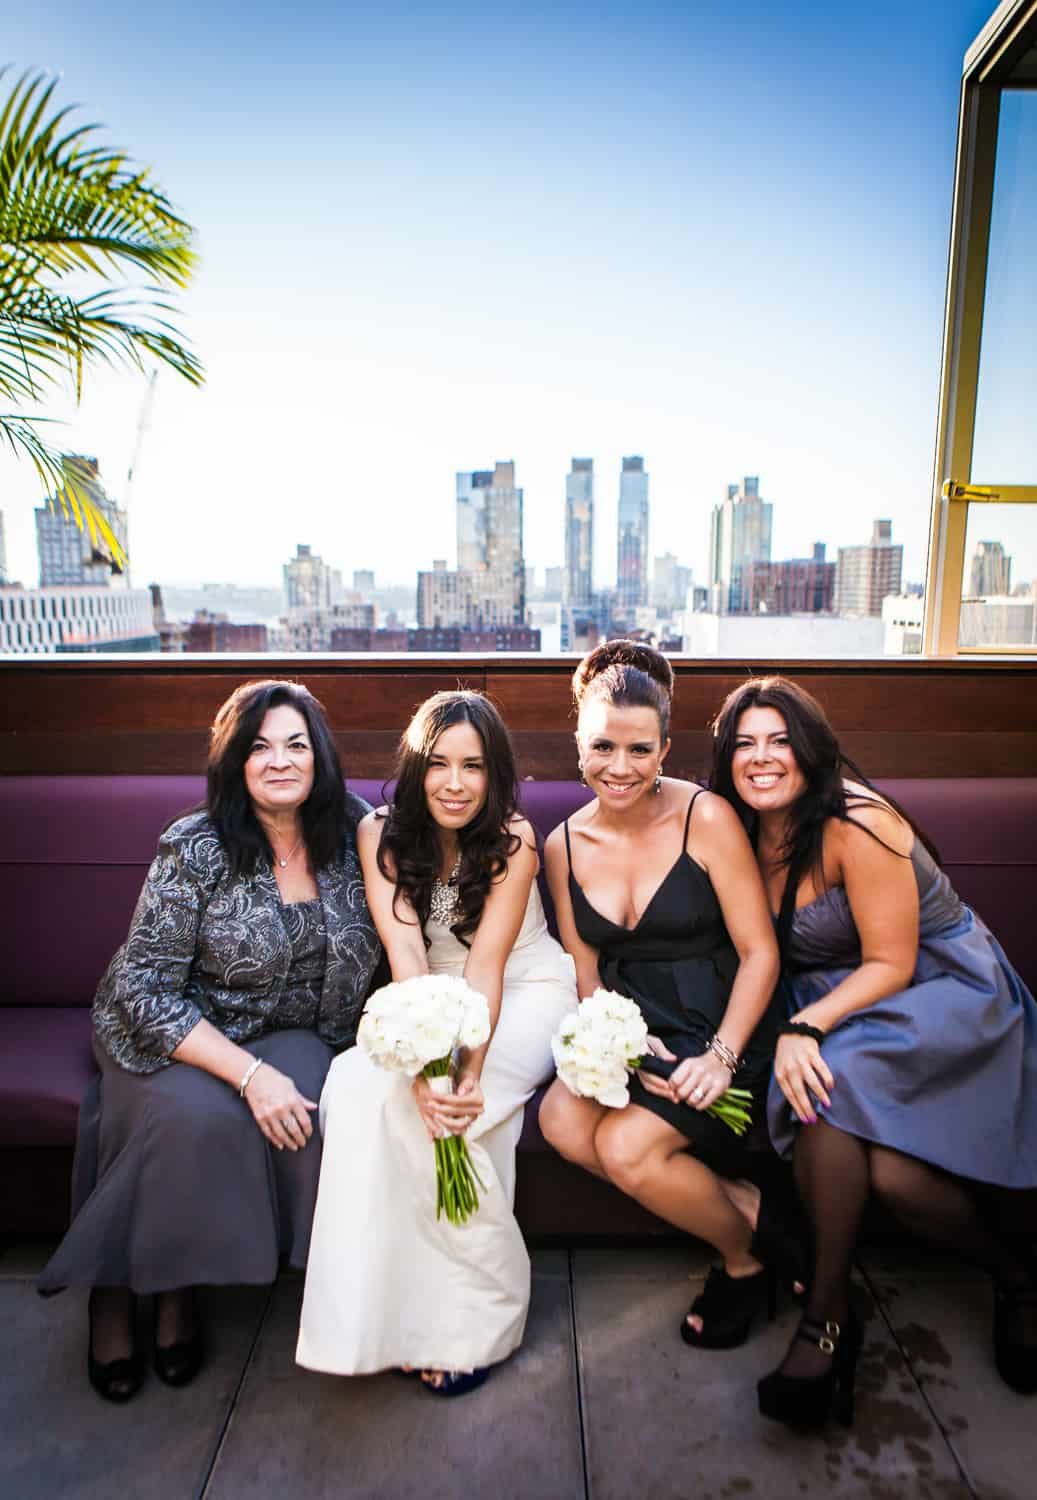 Bride and bridesmaids sitting on bench